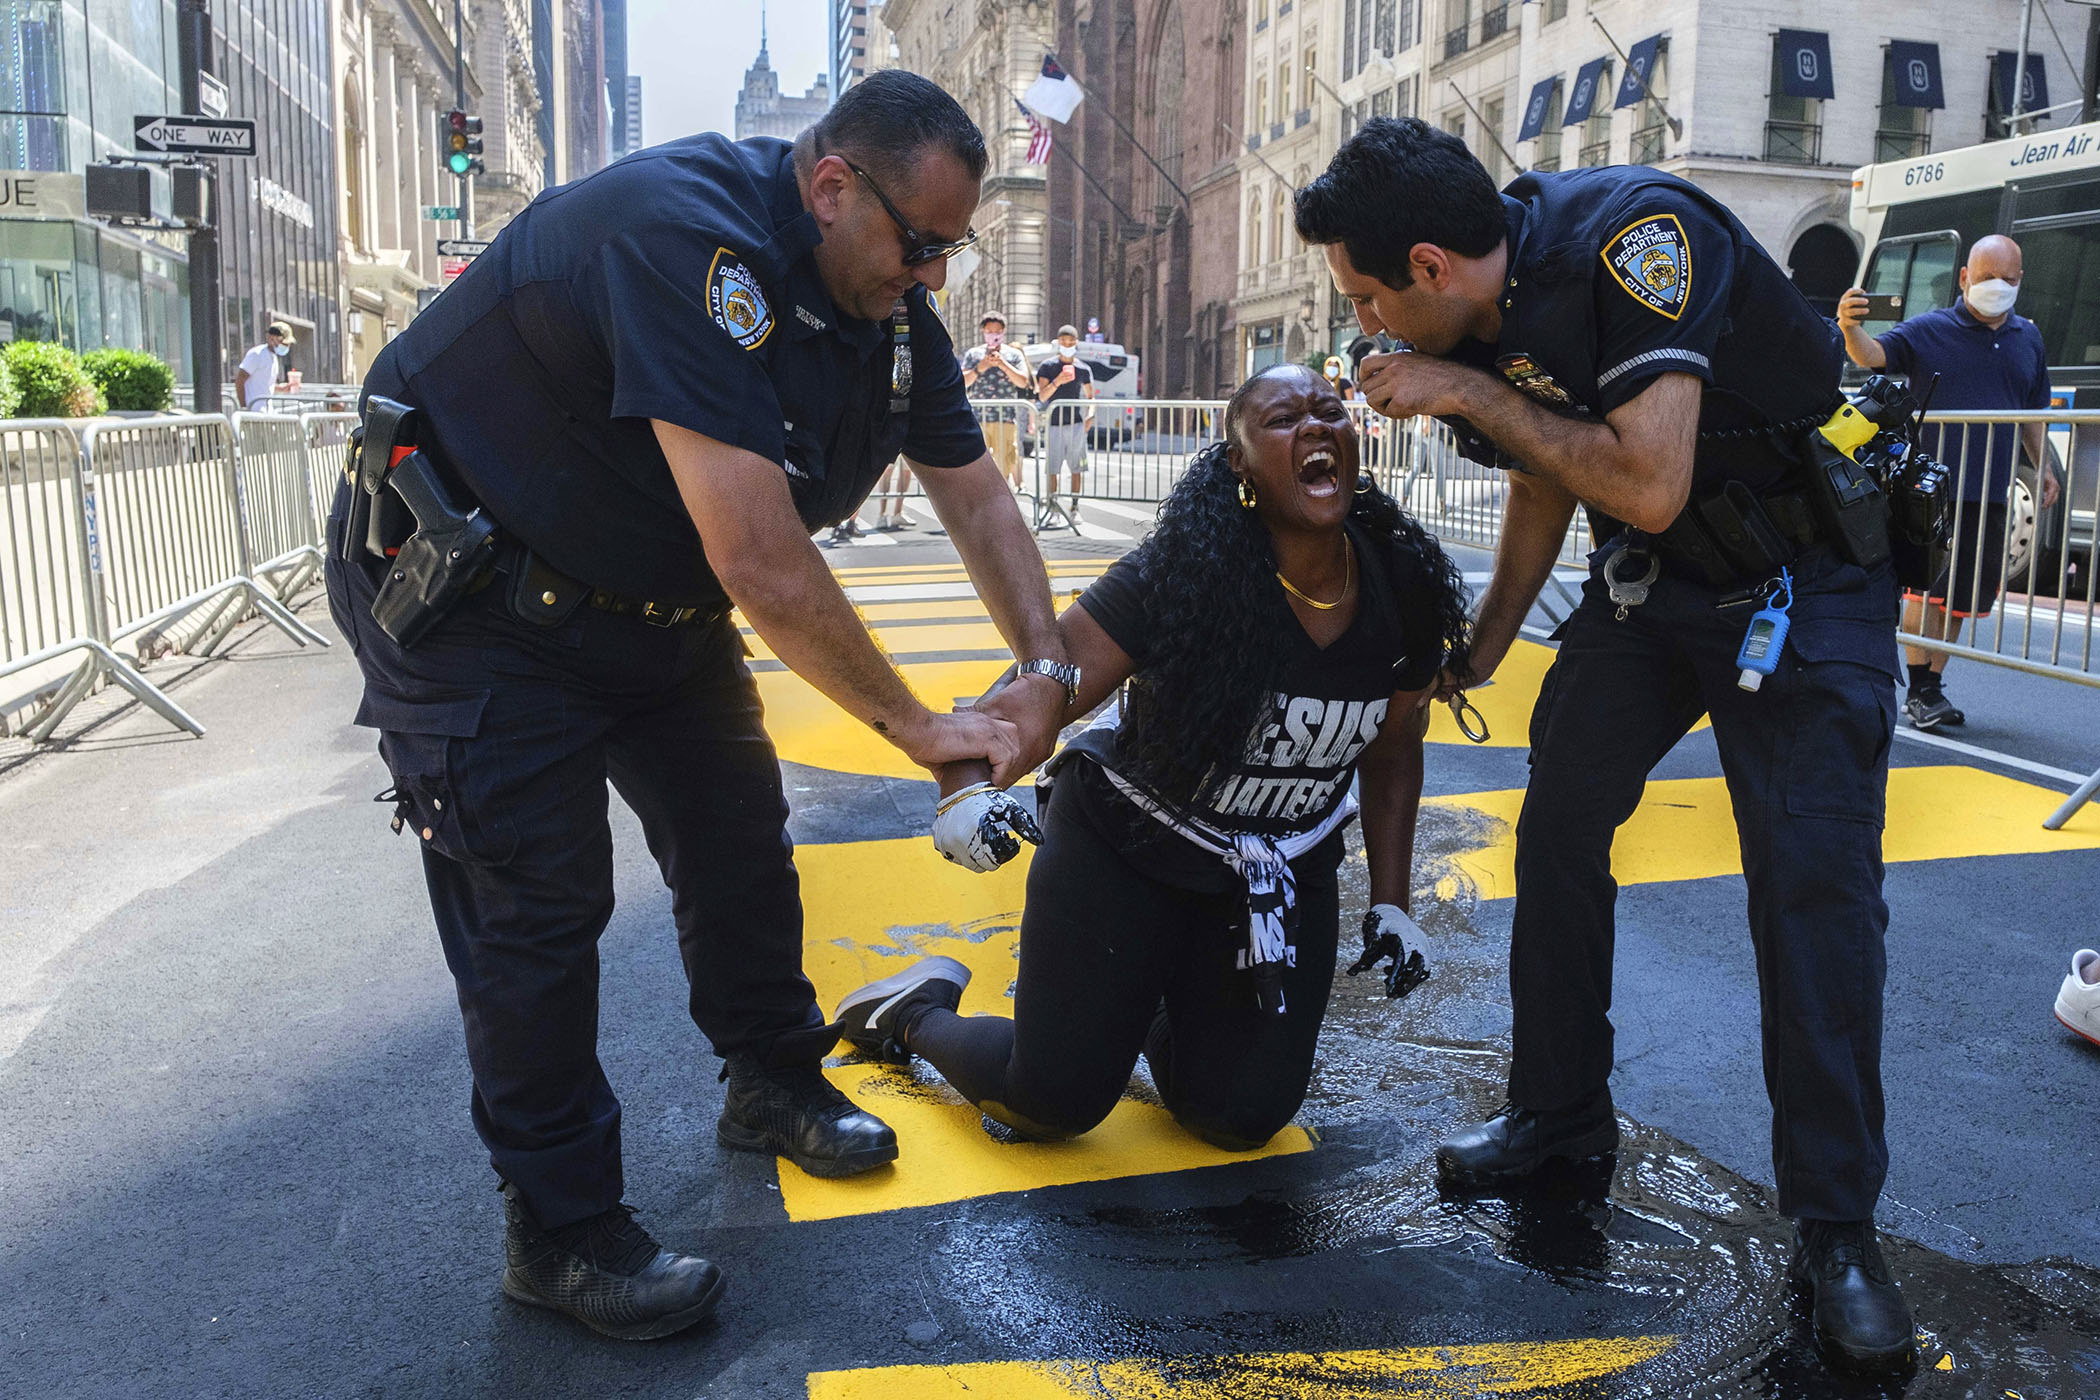 Two police officers hold onto the arms of a screaming woman kneeling on the ground